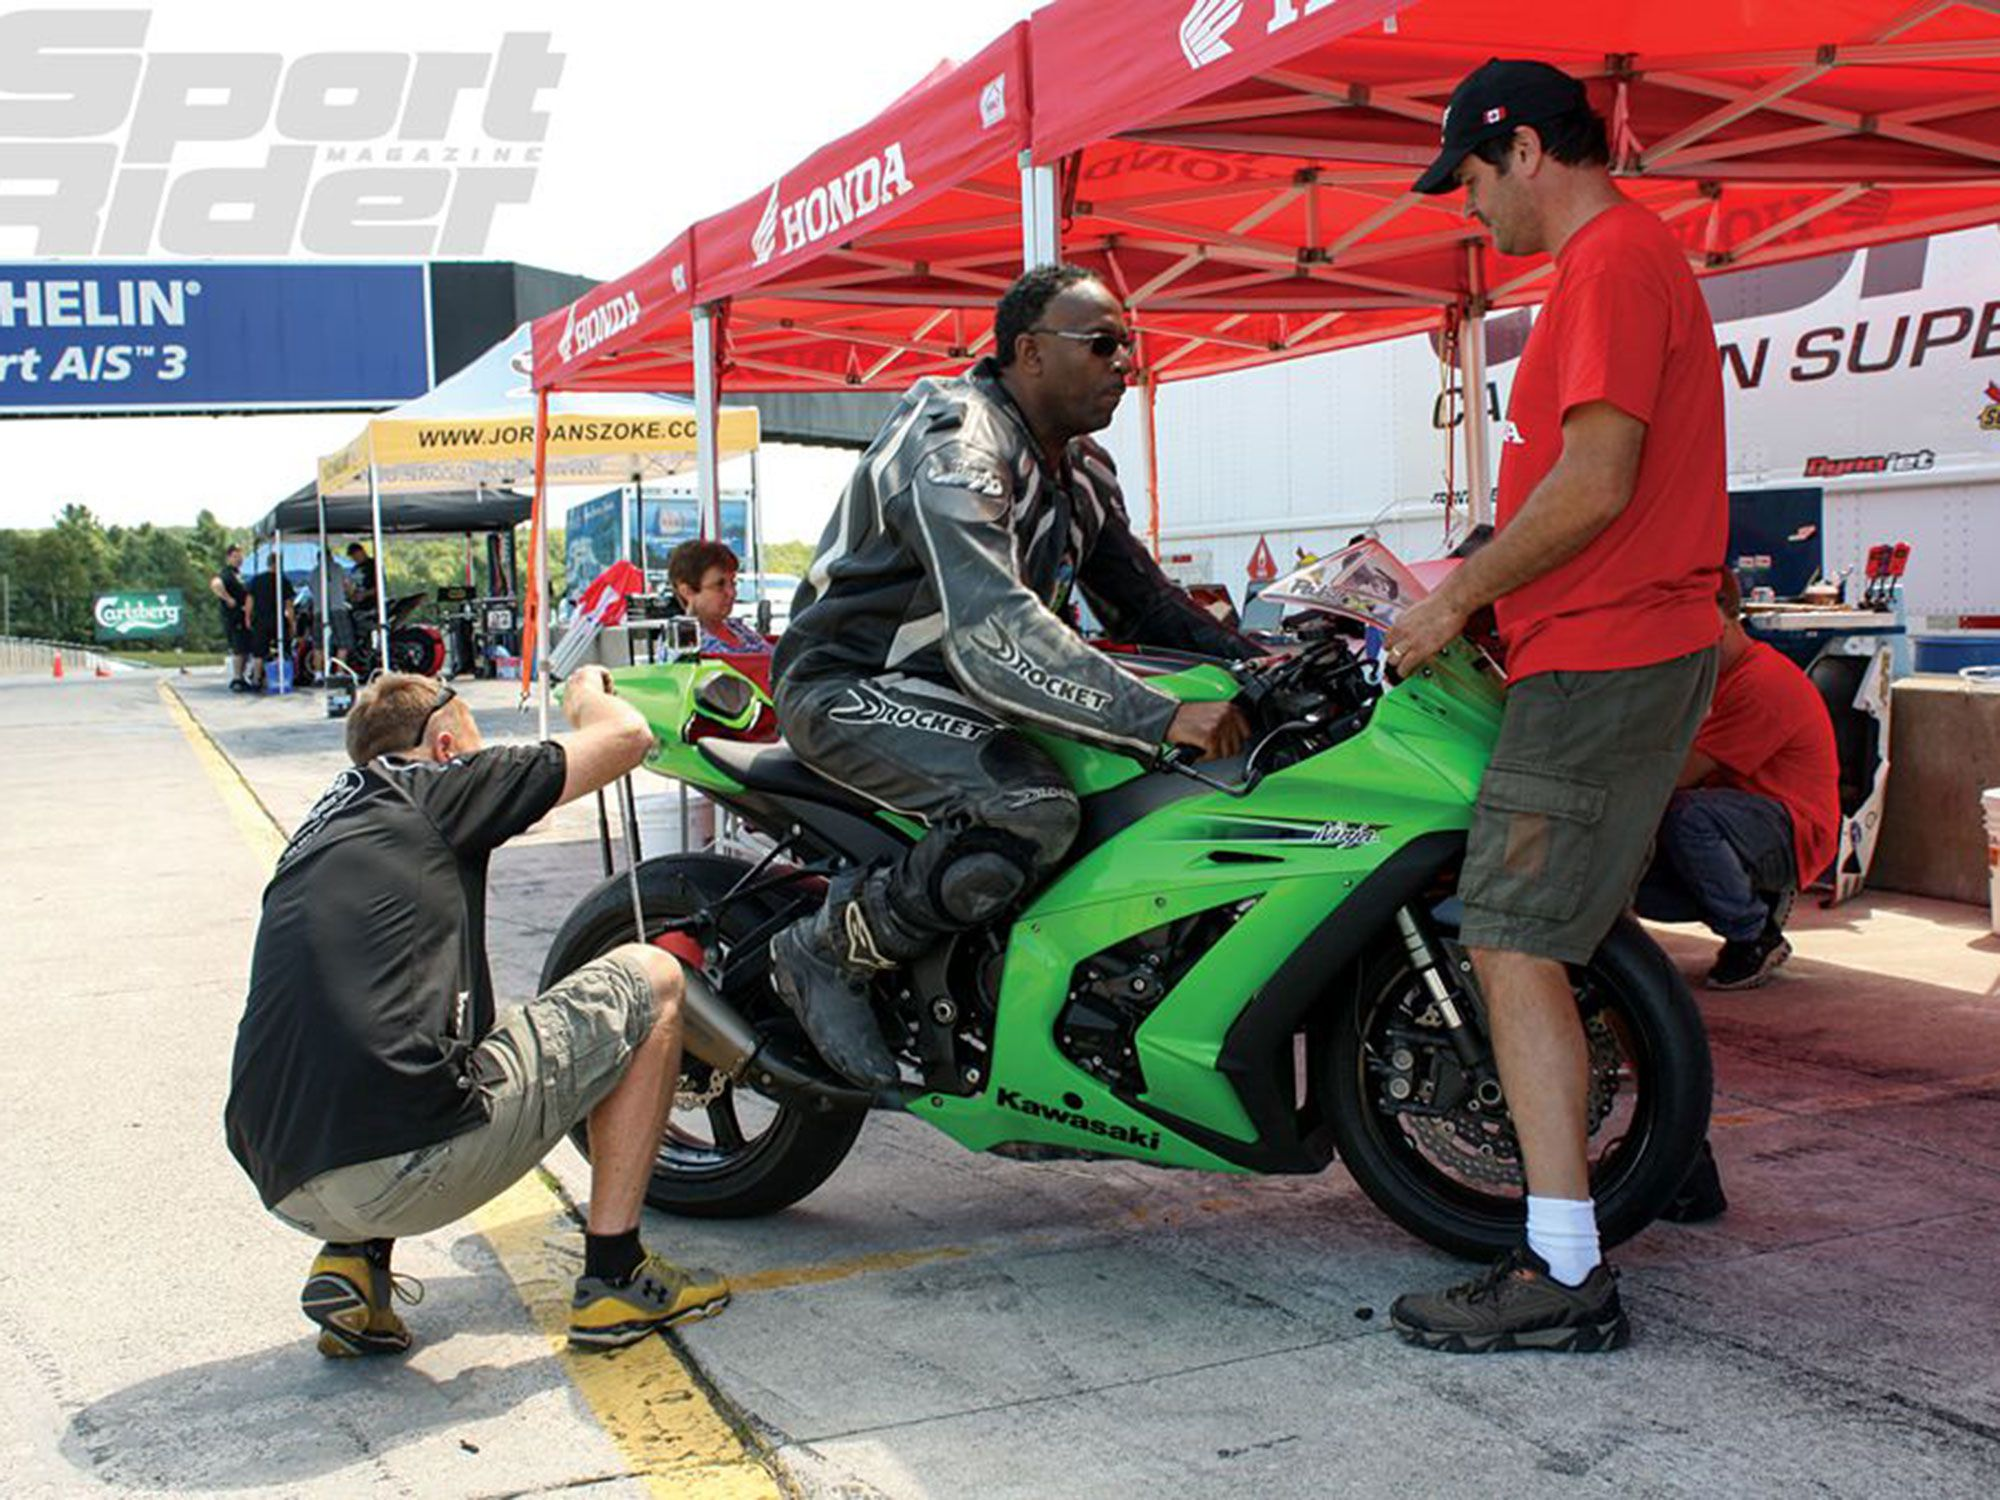 Streetbike to race-only conversions may be on the chopping block if the EPA gets its way, according to SEMA.